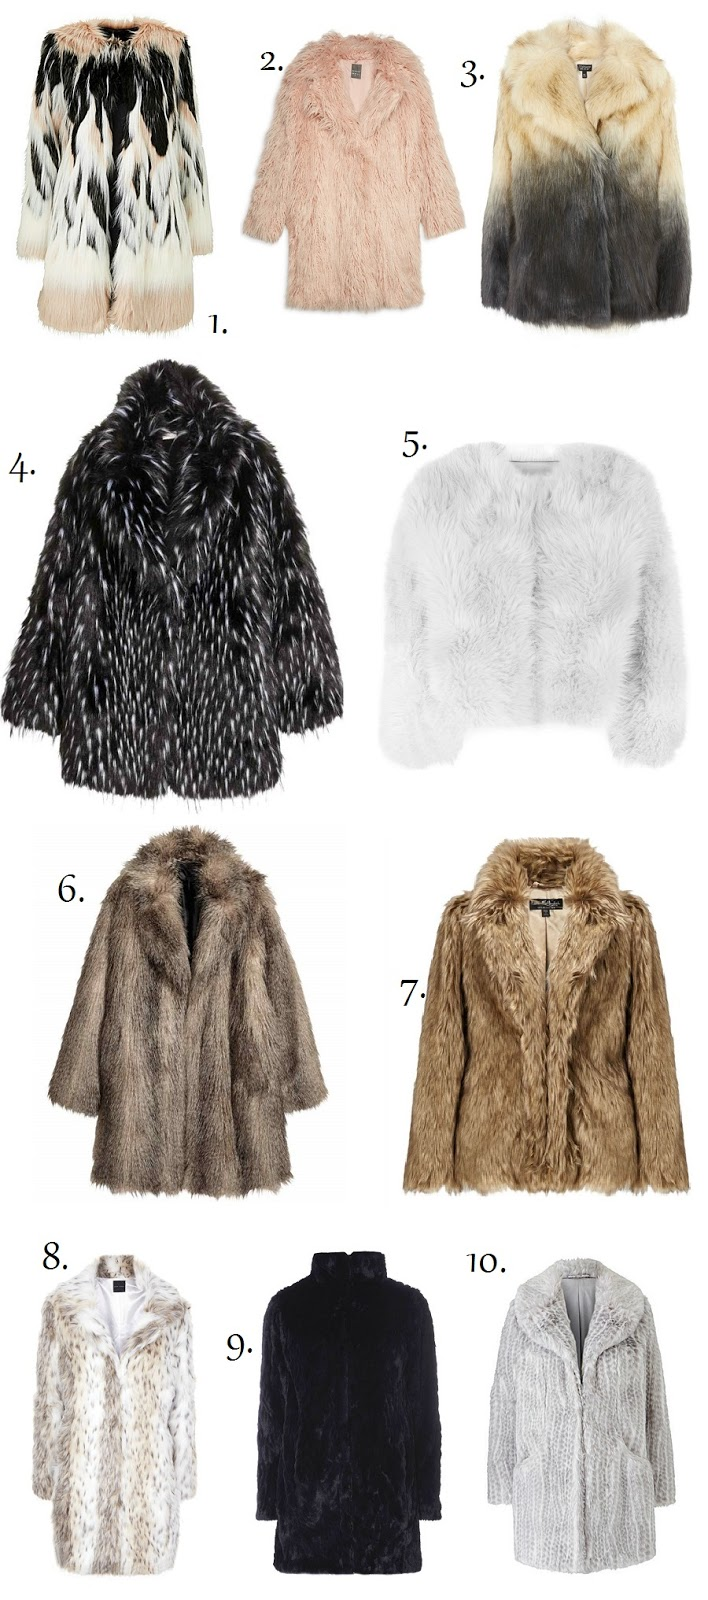 faux fur coats, don't wear real fur, The Style Guide Blog, Style Blog, Fashion Blog, Faux Fur coats